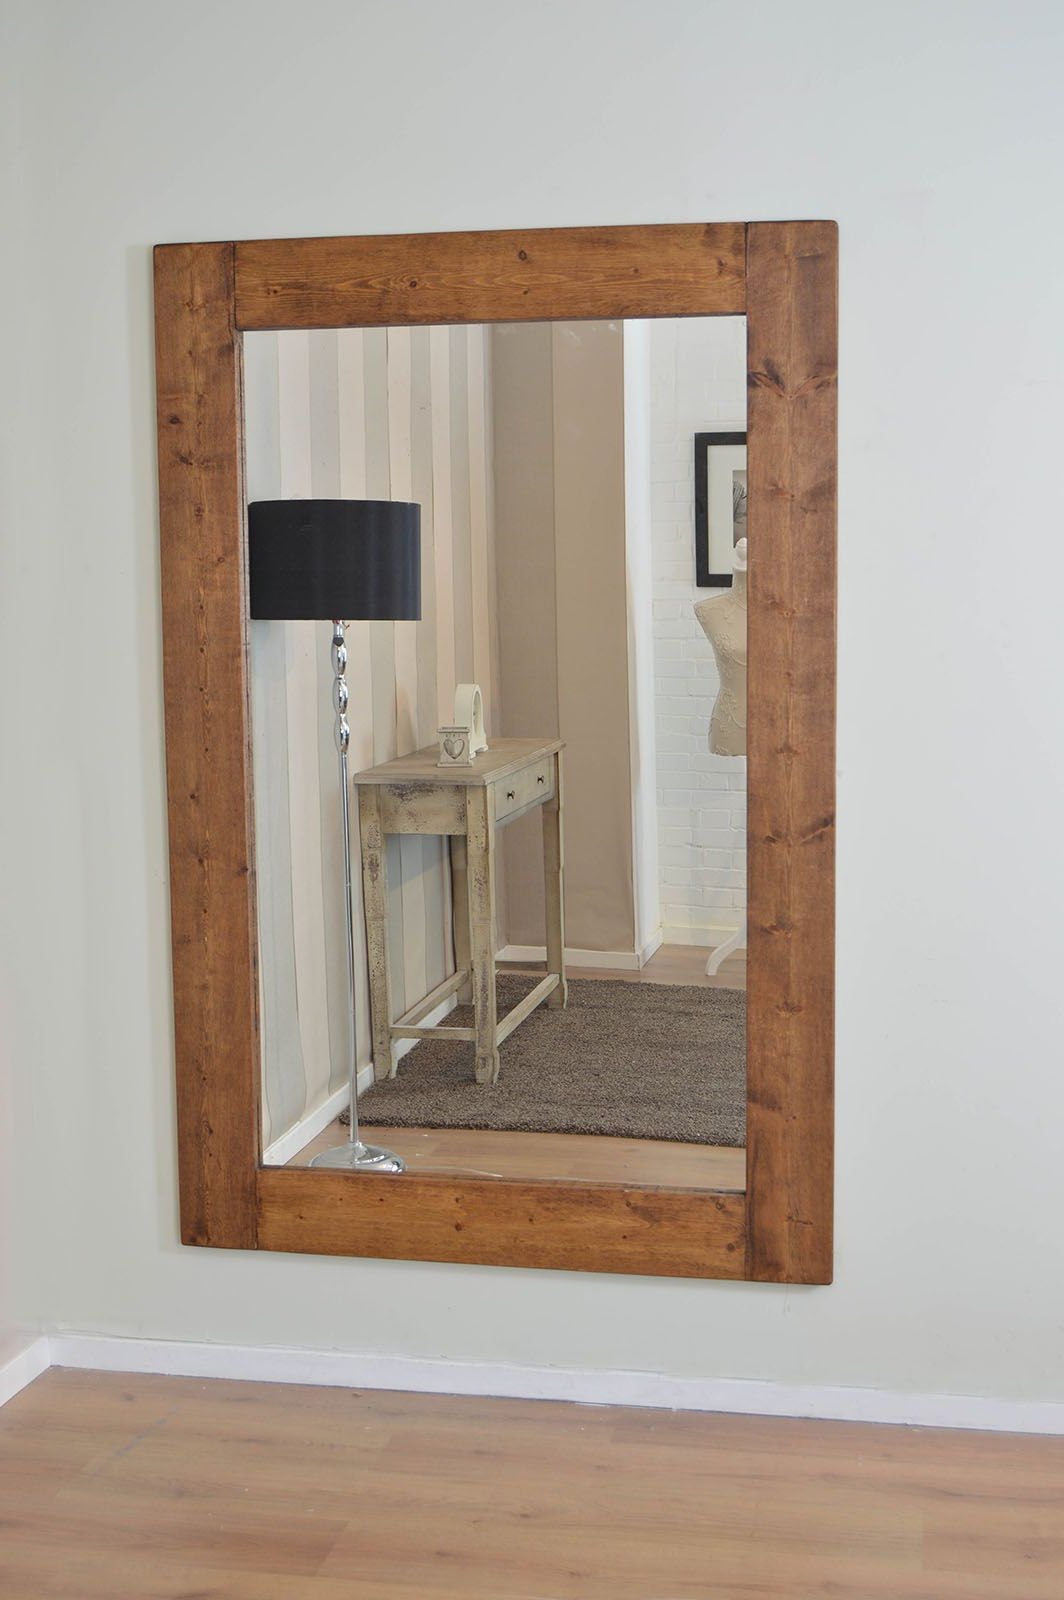 Large Solid Wood Wall Mirror 5Ft10 X 3Ft10 (178Cm X 117Cm For Well Known Large Wooden Wall Mirrors (Gallery 9 of 20)